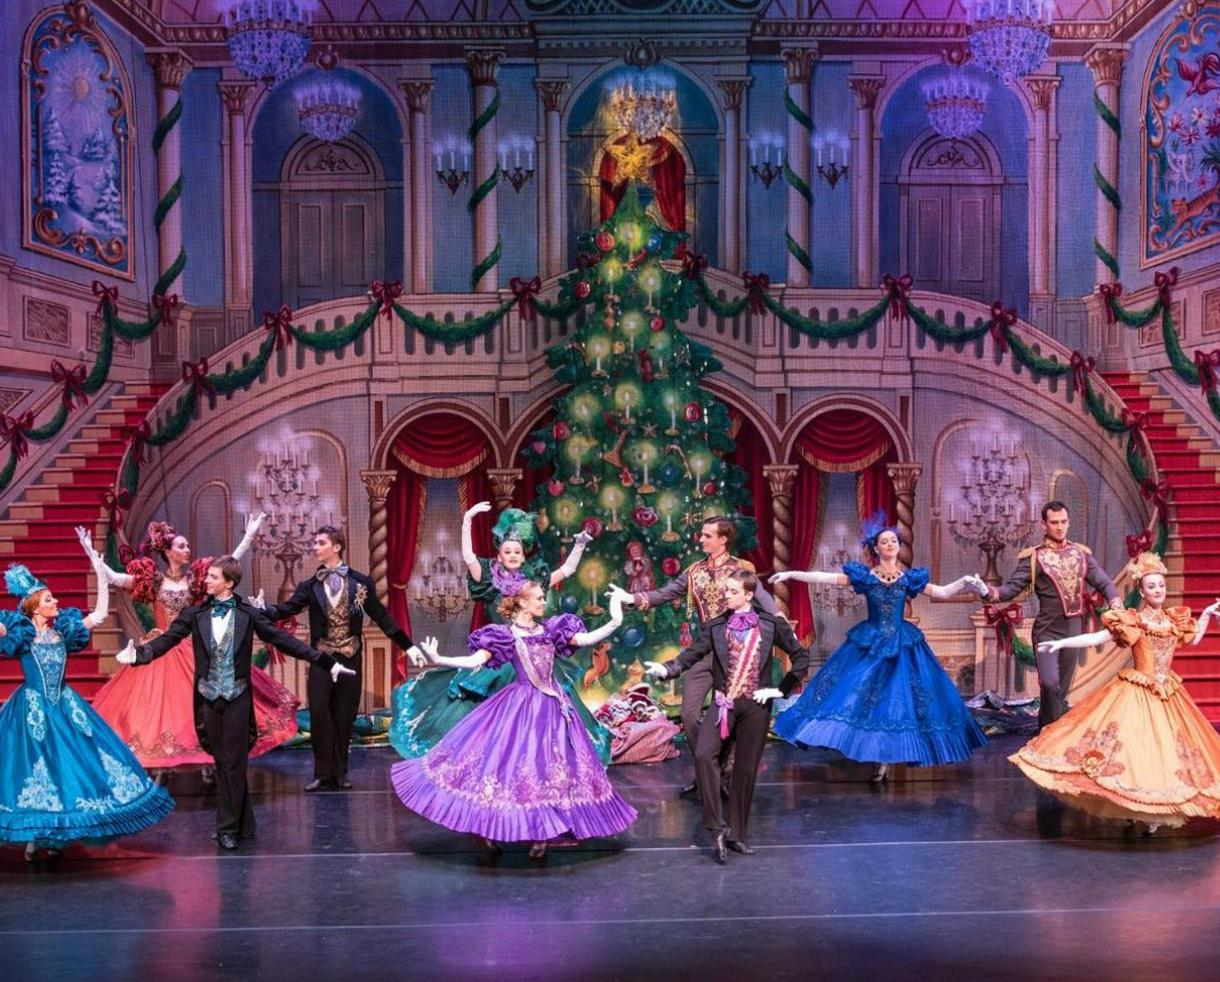 The Moscow Ballet's Great Russian Nutcracker at The SMU McFarlin Memorial Auditorium